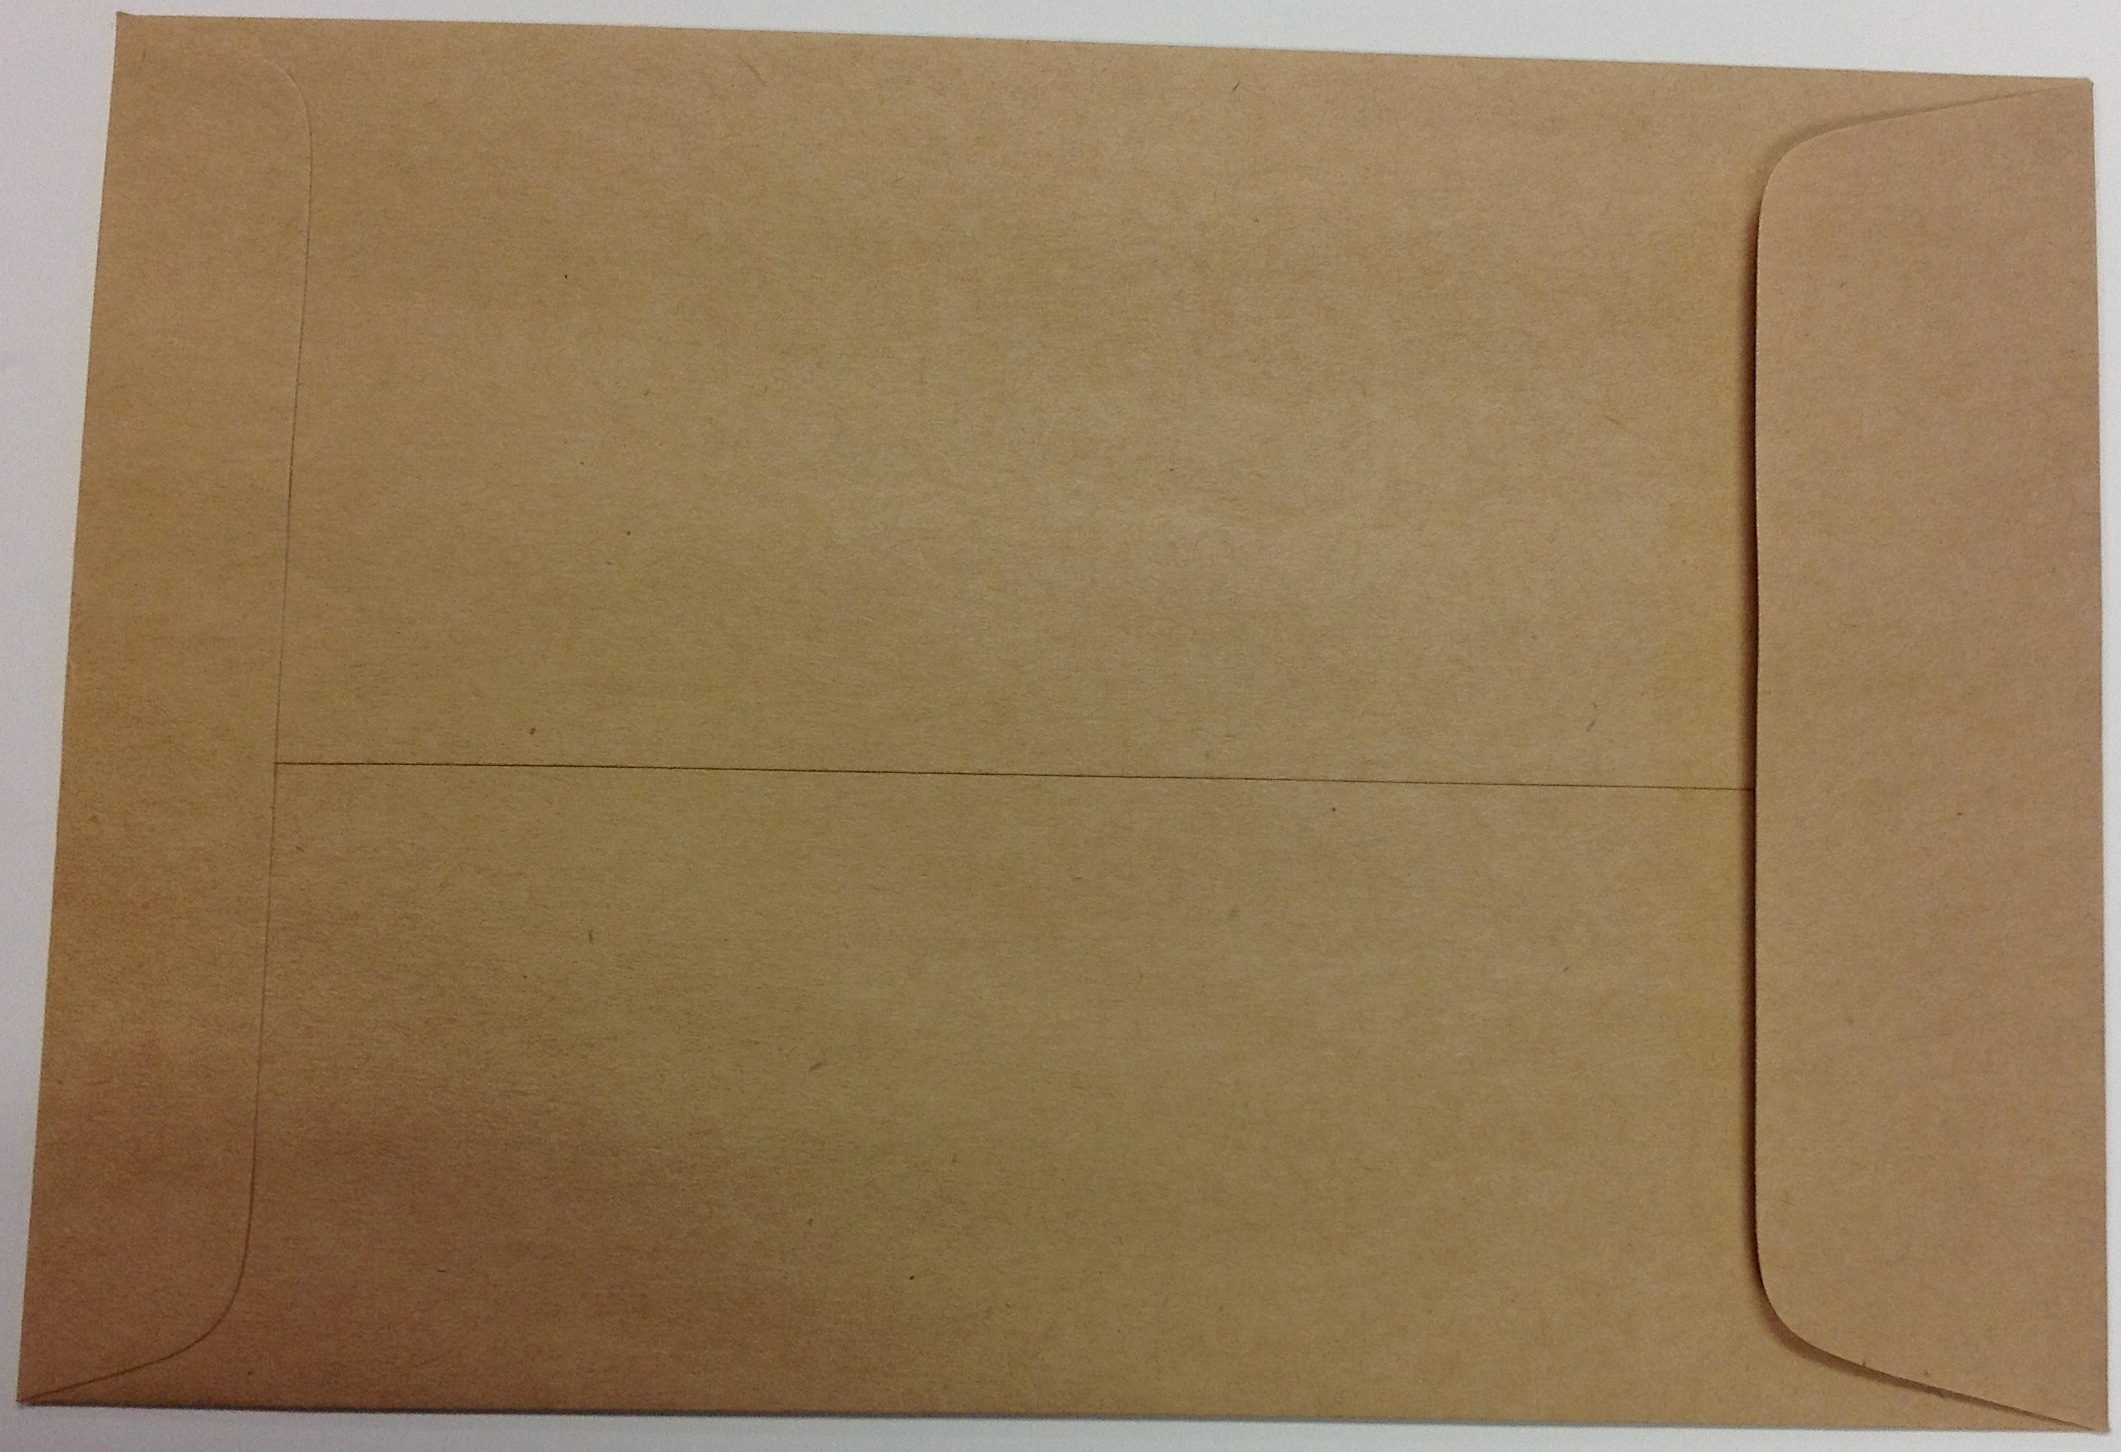 6.5 x 9.5 KRAFT ENVELOPES 100s (Recycled 60#, gummed flap, open on the short  side)